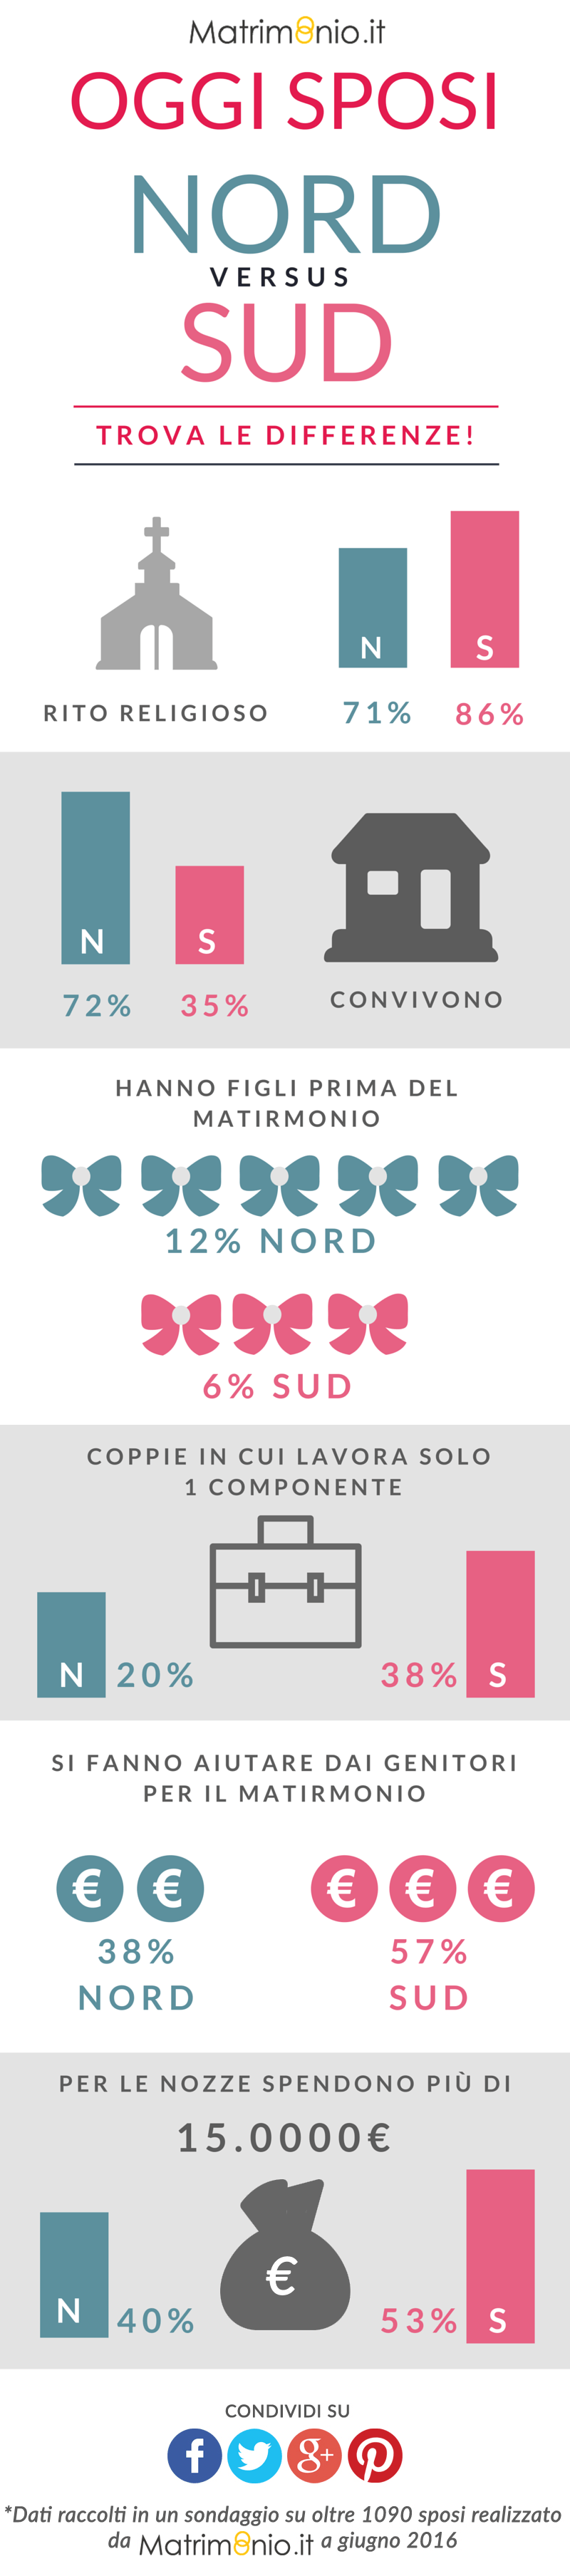 Matrimonio.it | #Infografica #sondaggio #matrimonio nord vs sud #wedding